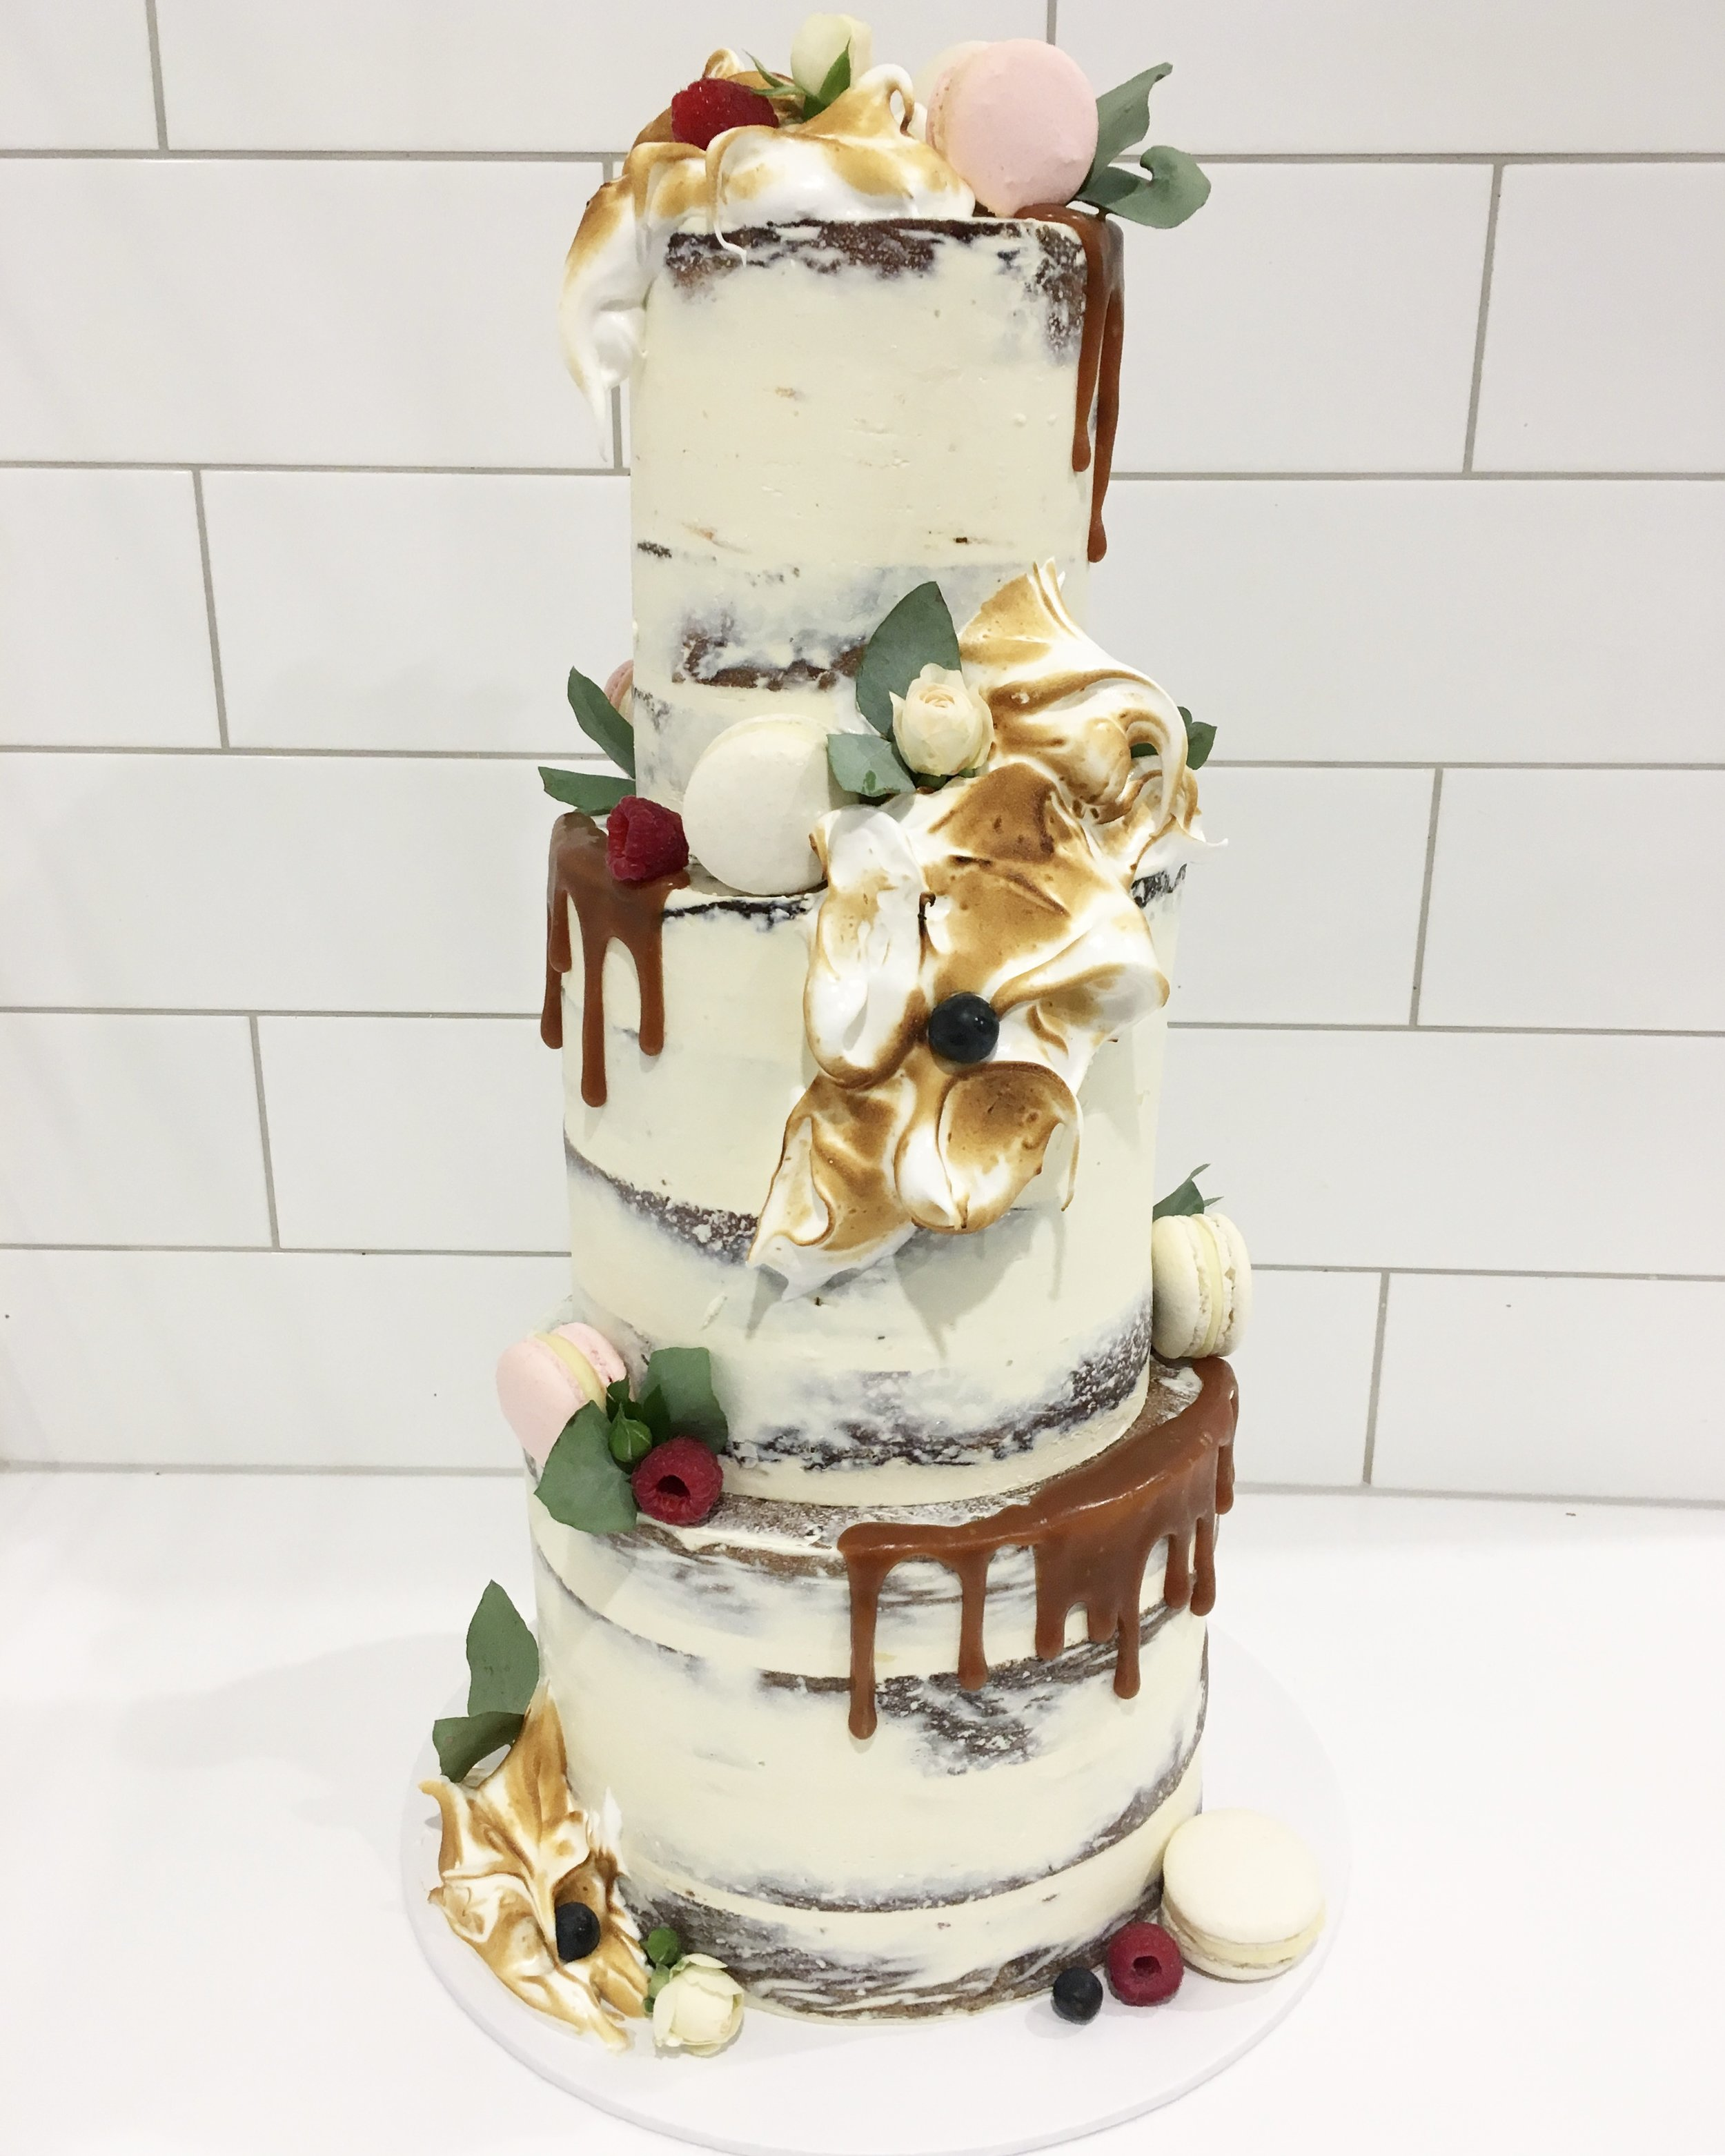 Naked Cake with Scorched Meringues